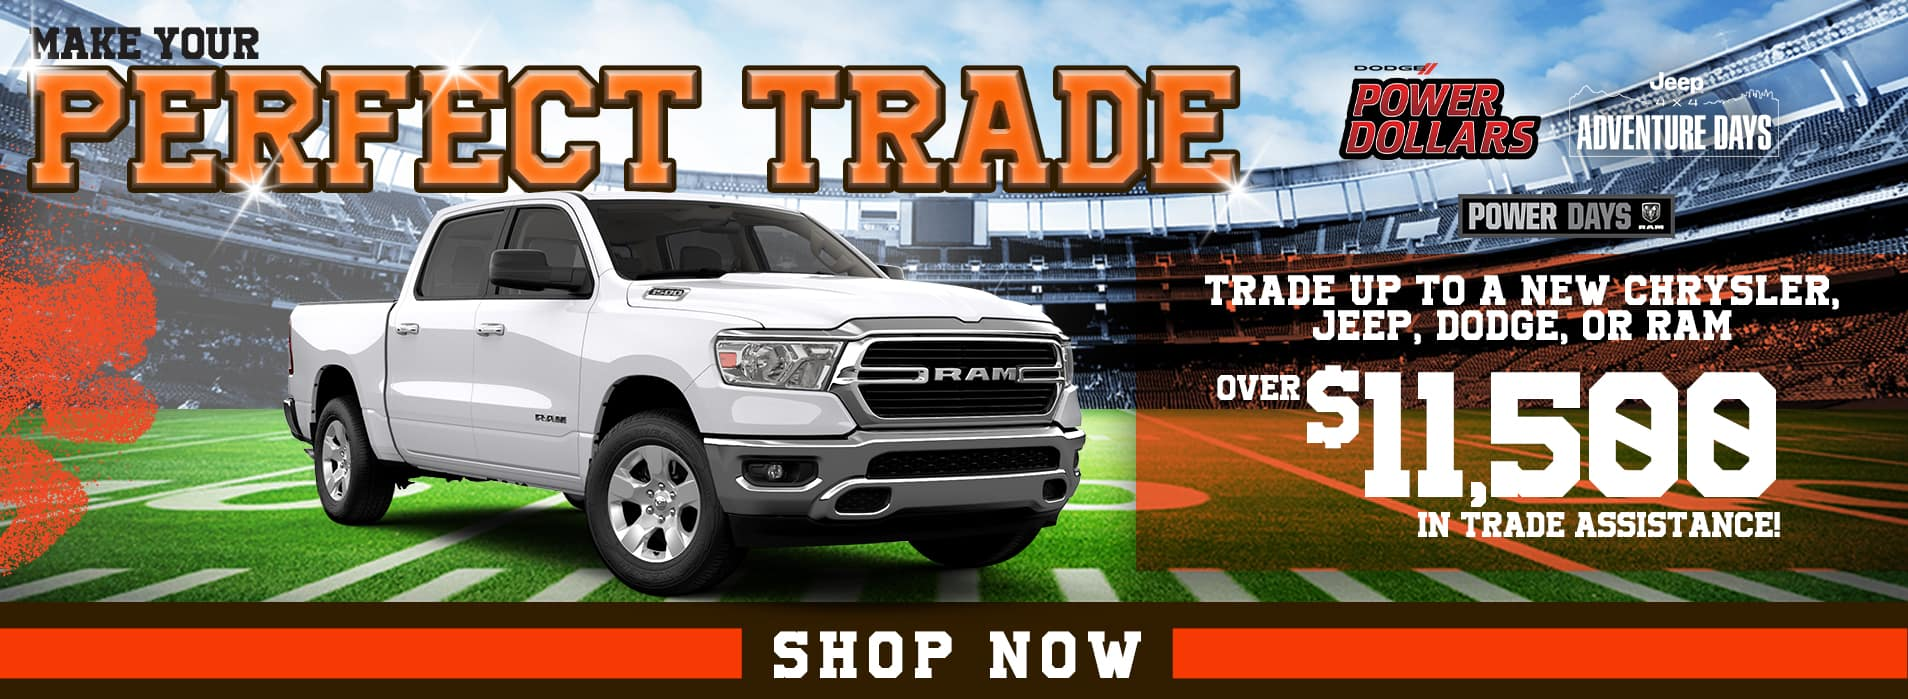 Get over $11,500 in trade assistance